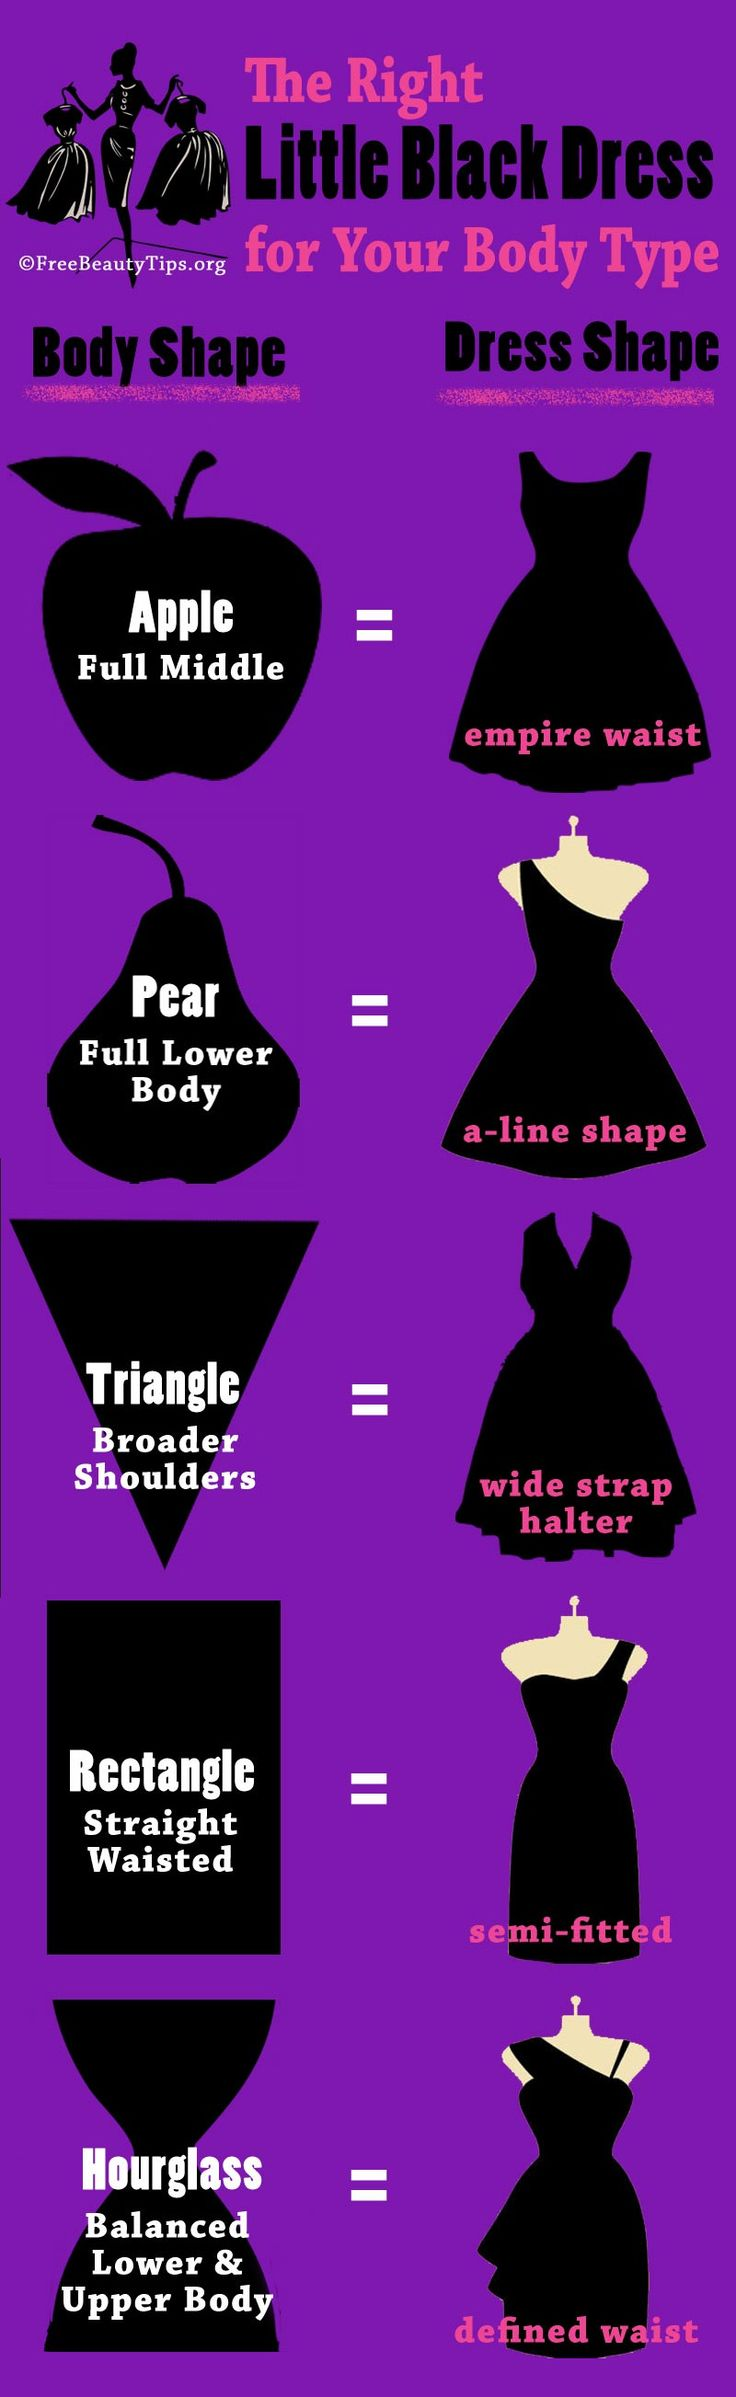 Choosing a little black dress for your body type